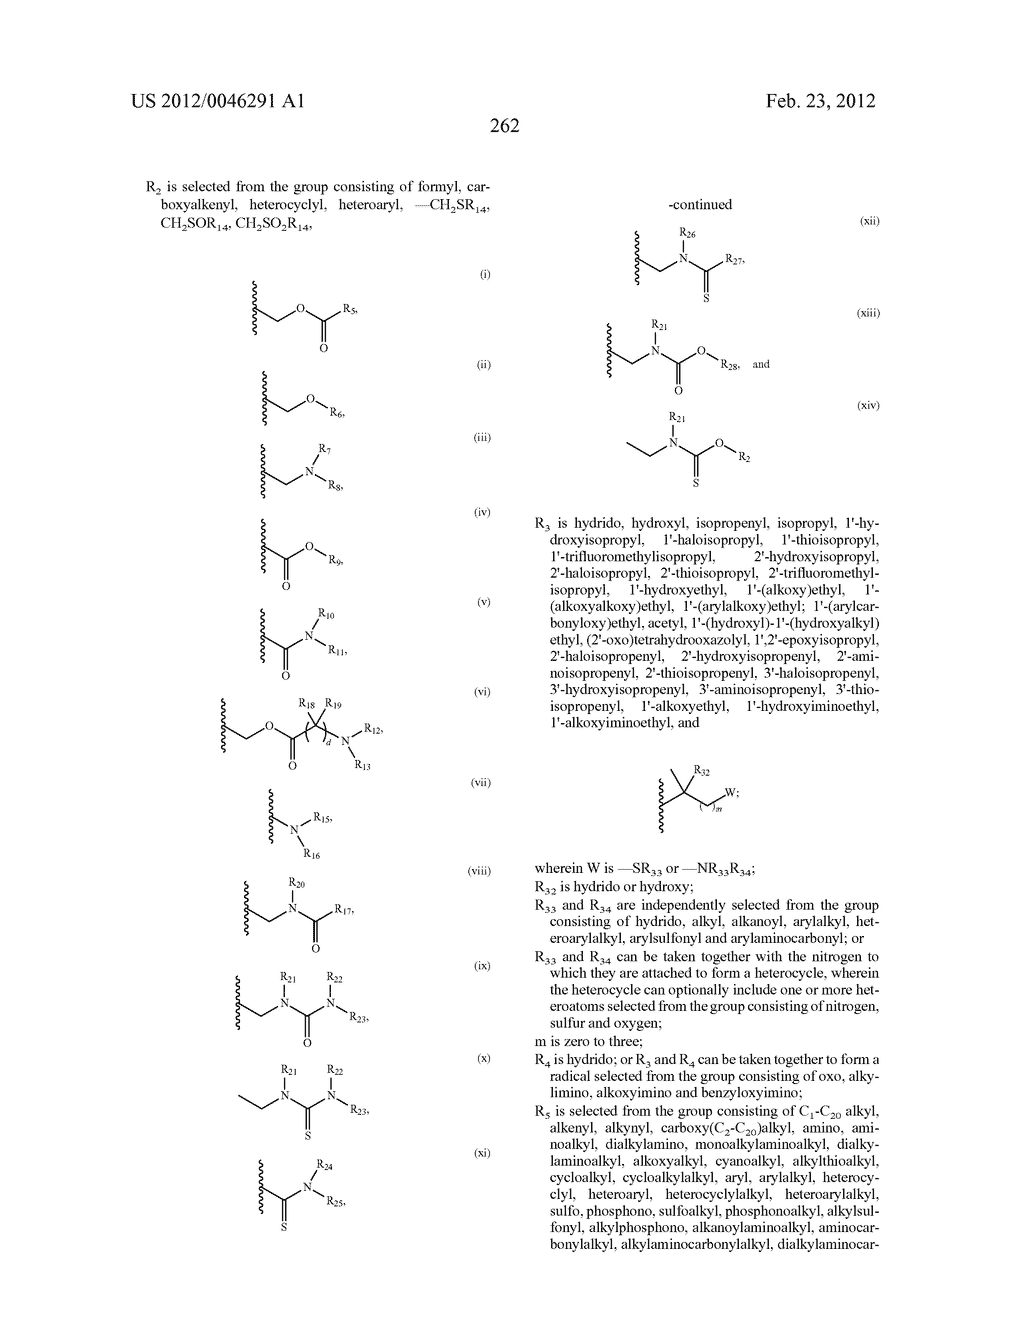 Extended Triterpene Derivatives - diagram, schematic, and image 262